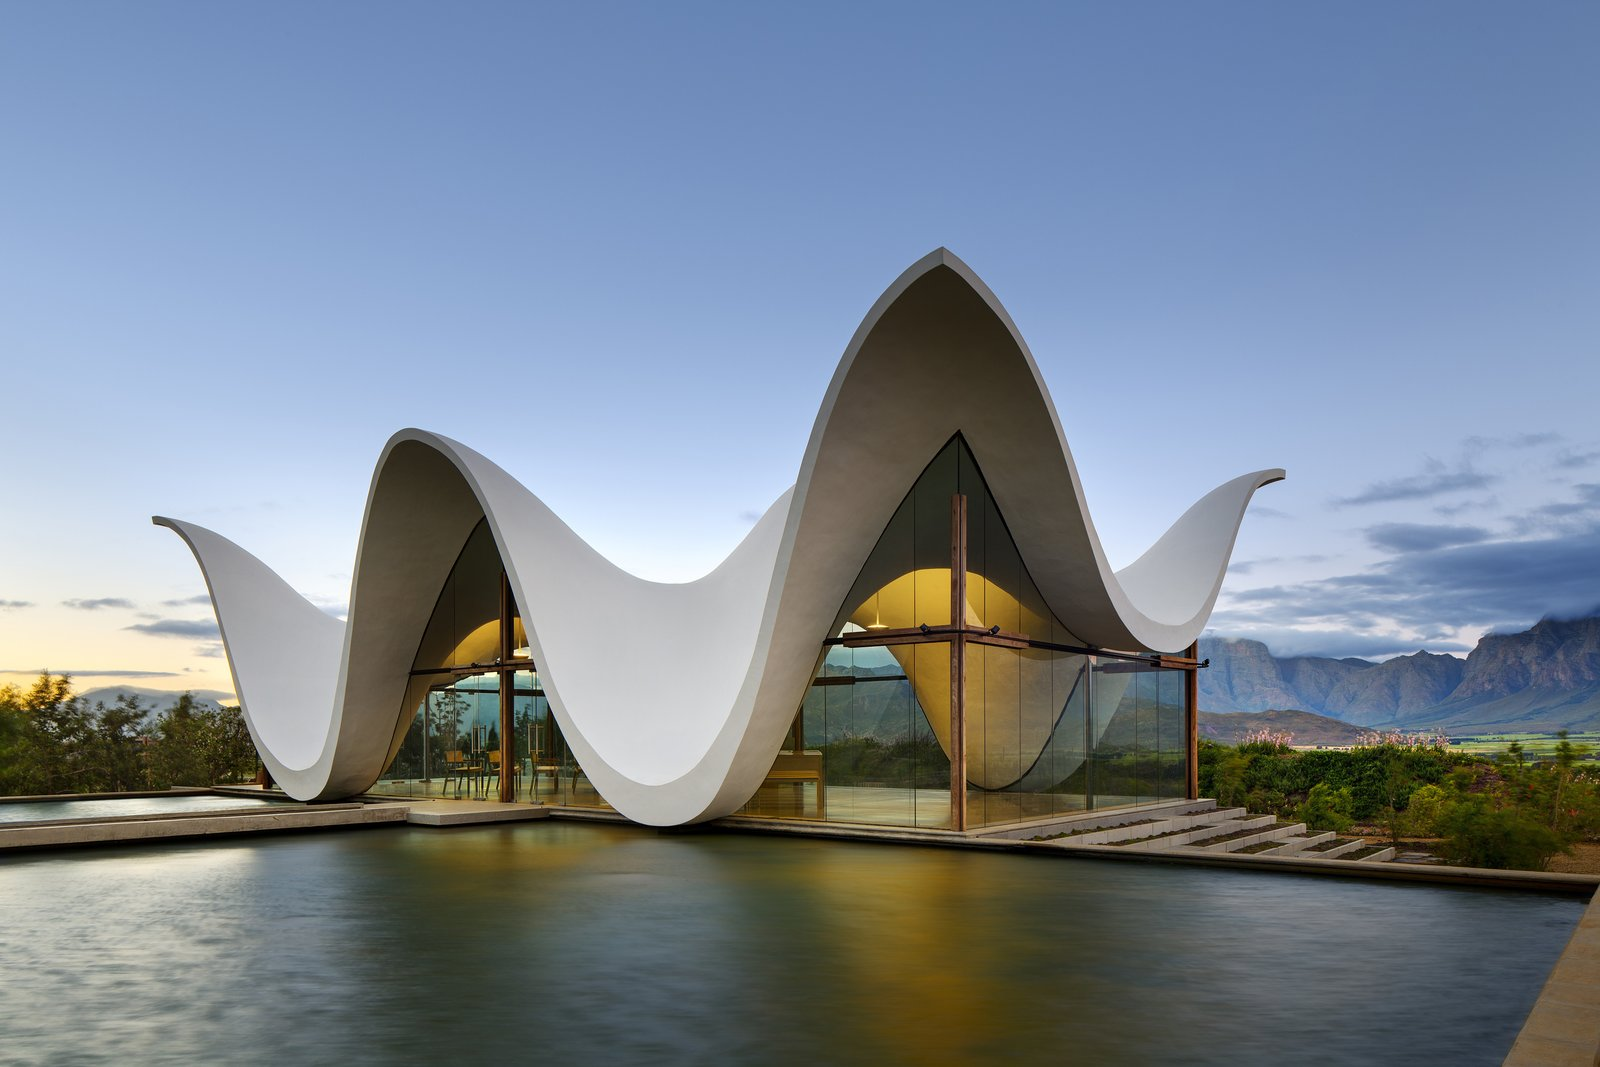 10 Modern Wedding Venues That Will Make Your Big Day Unforgettable: Wedding Venues By The Water At Reisefeber.org